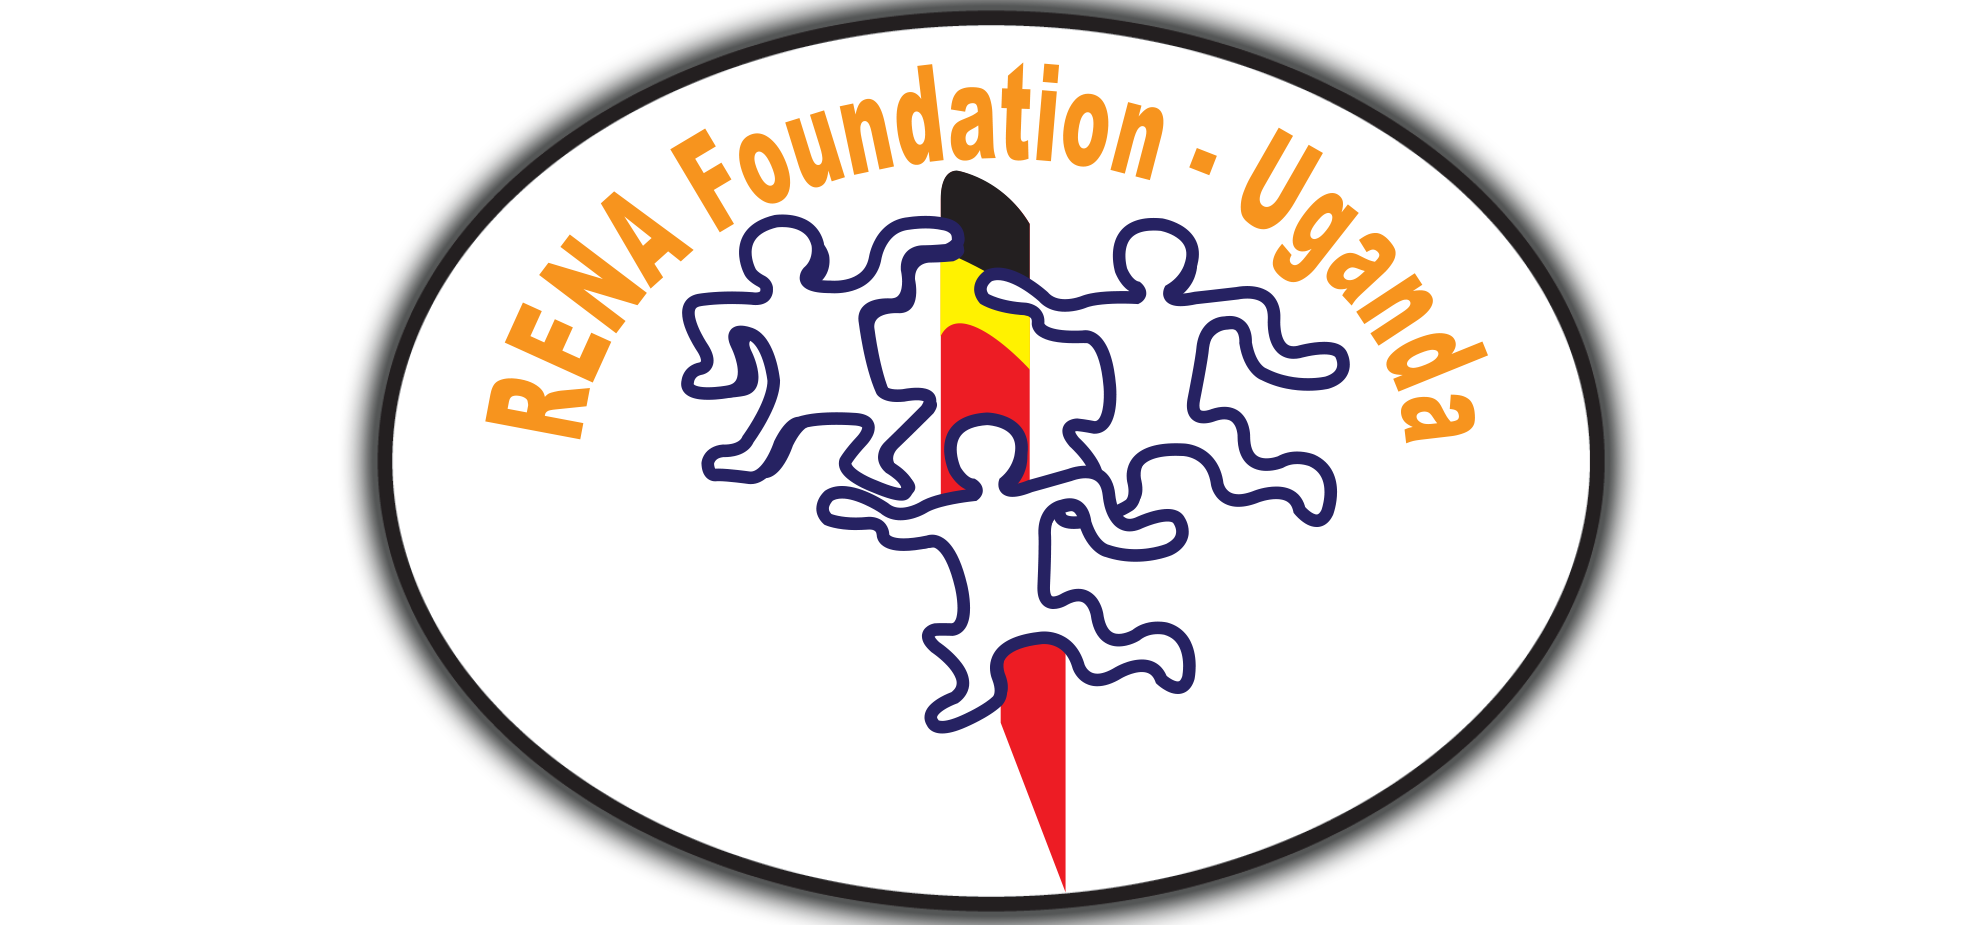 Rena Foundation